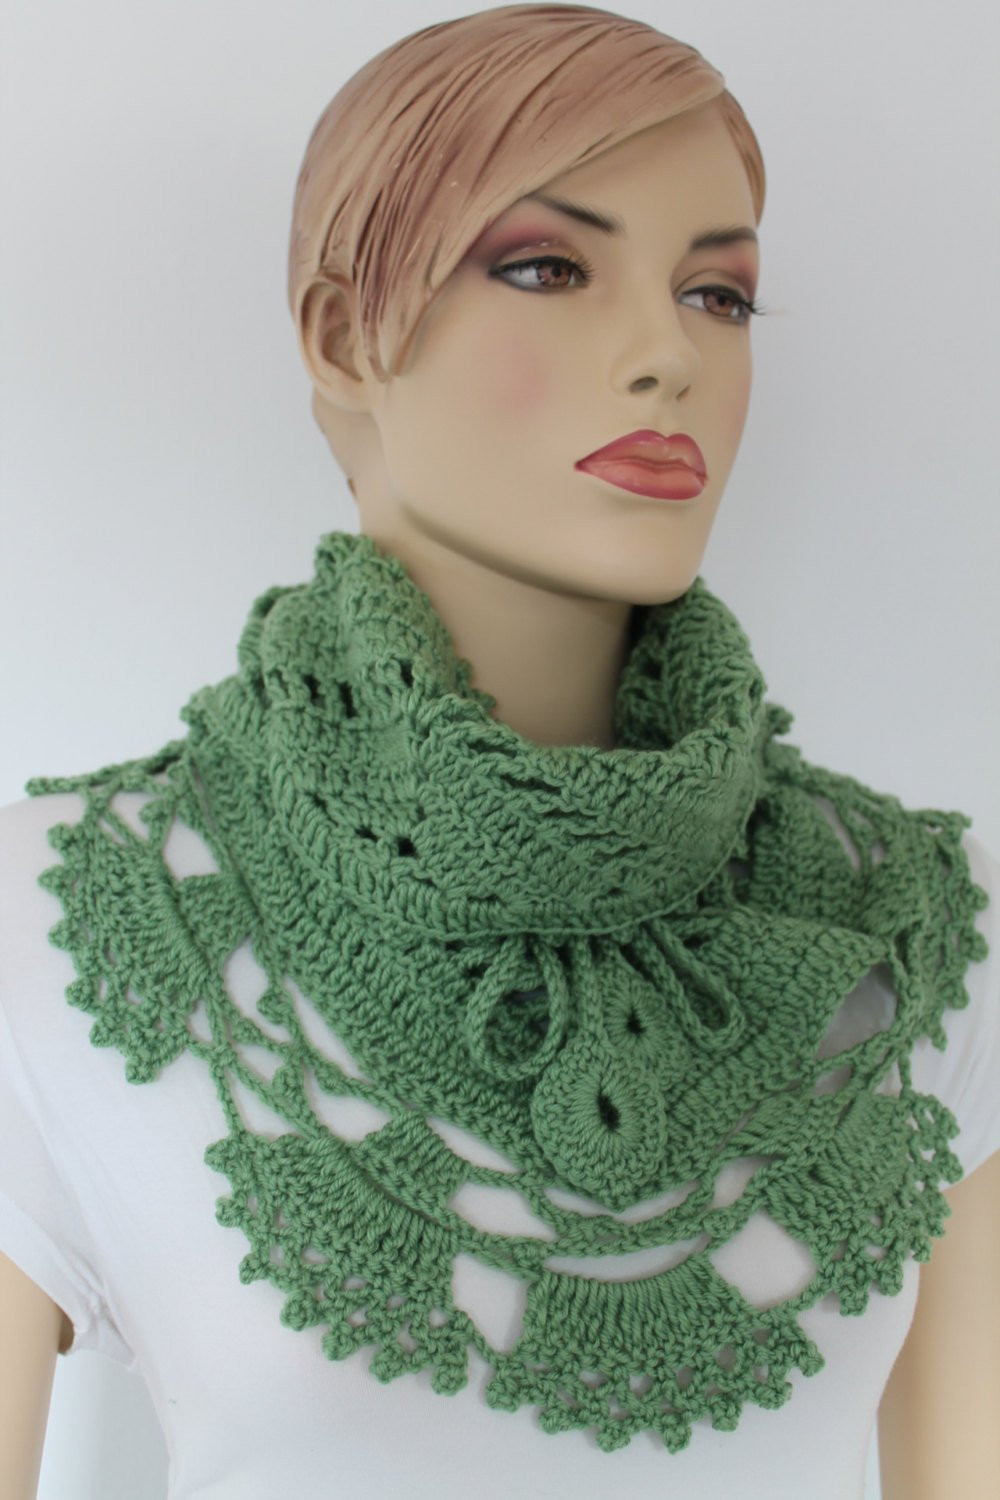 Luxury Green Triangle Lace Crochet Scarf Shawl Chunky Cowl Neck Crochet Cowl Neck Scarf Of Superb 49 Models Crochet Cowl Neck Scarf